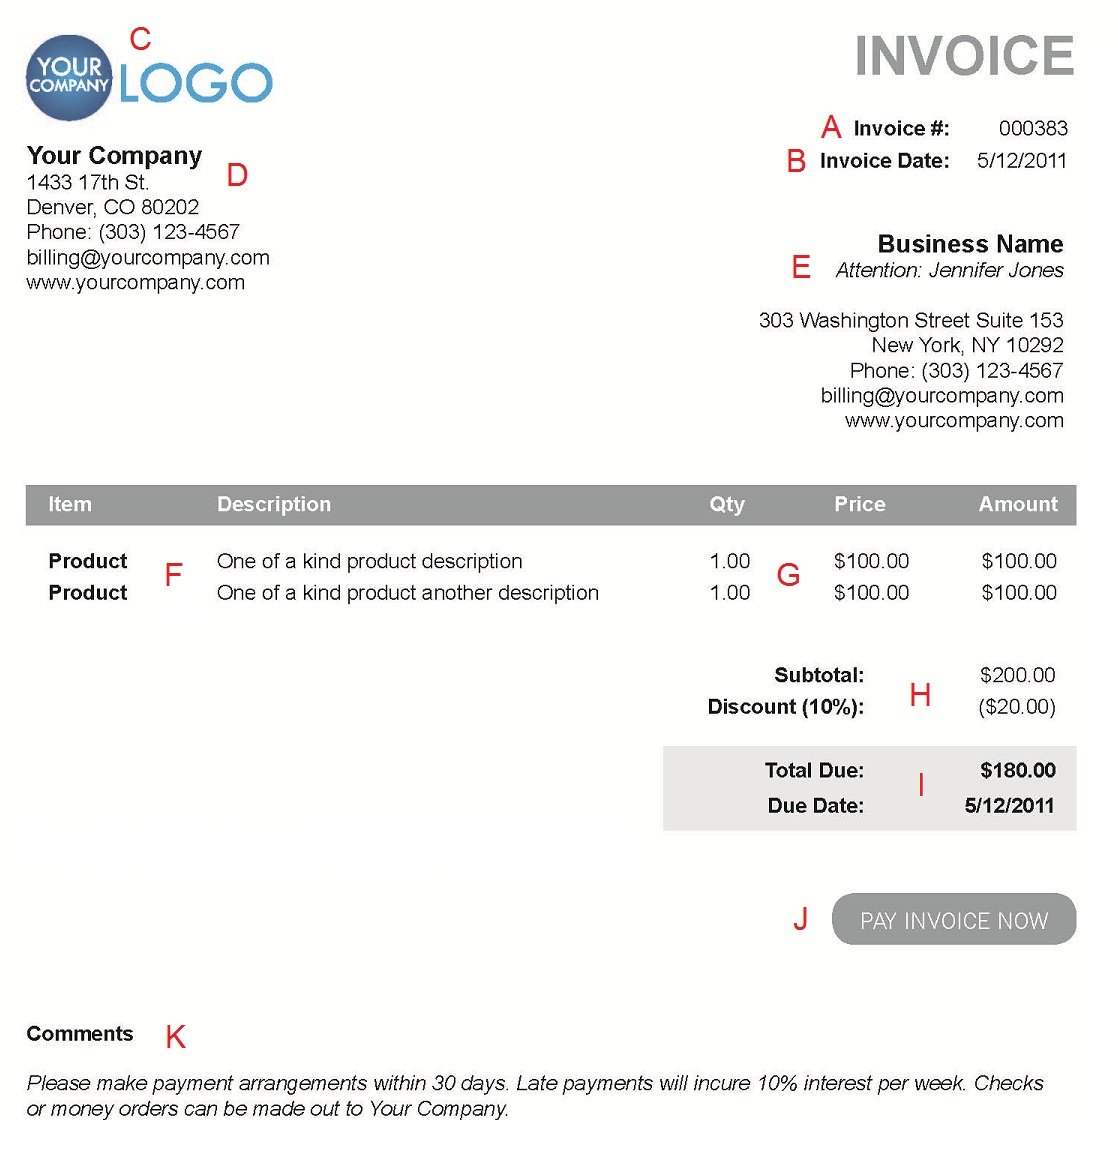 Massenargcus  Wonderful The  Different Sections Of An Electronic Payment Invoice With Hot A  With Captivating Free Invoice Software For Small Business Also How To Get The Invoice Price Of A Car In Addition Jeep Invoice Pricing And Invoice Price Ford F As Well As Free Printable Invoices Forms Additionally Toyota Sienna Invoice From Paysimplecom With Massenargcus  Hot The  Different Sections Of An Electronic Payment Invoice With Captivating A  And Wonderful Free Invoice Software For Small Business Also How To Get The Invoice Price Of A Car In Addition Jeep Invoice Pricing From Paysimplecom